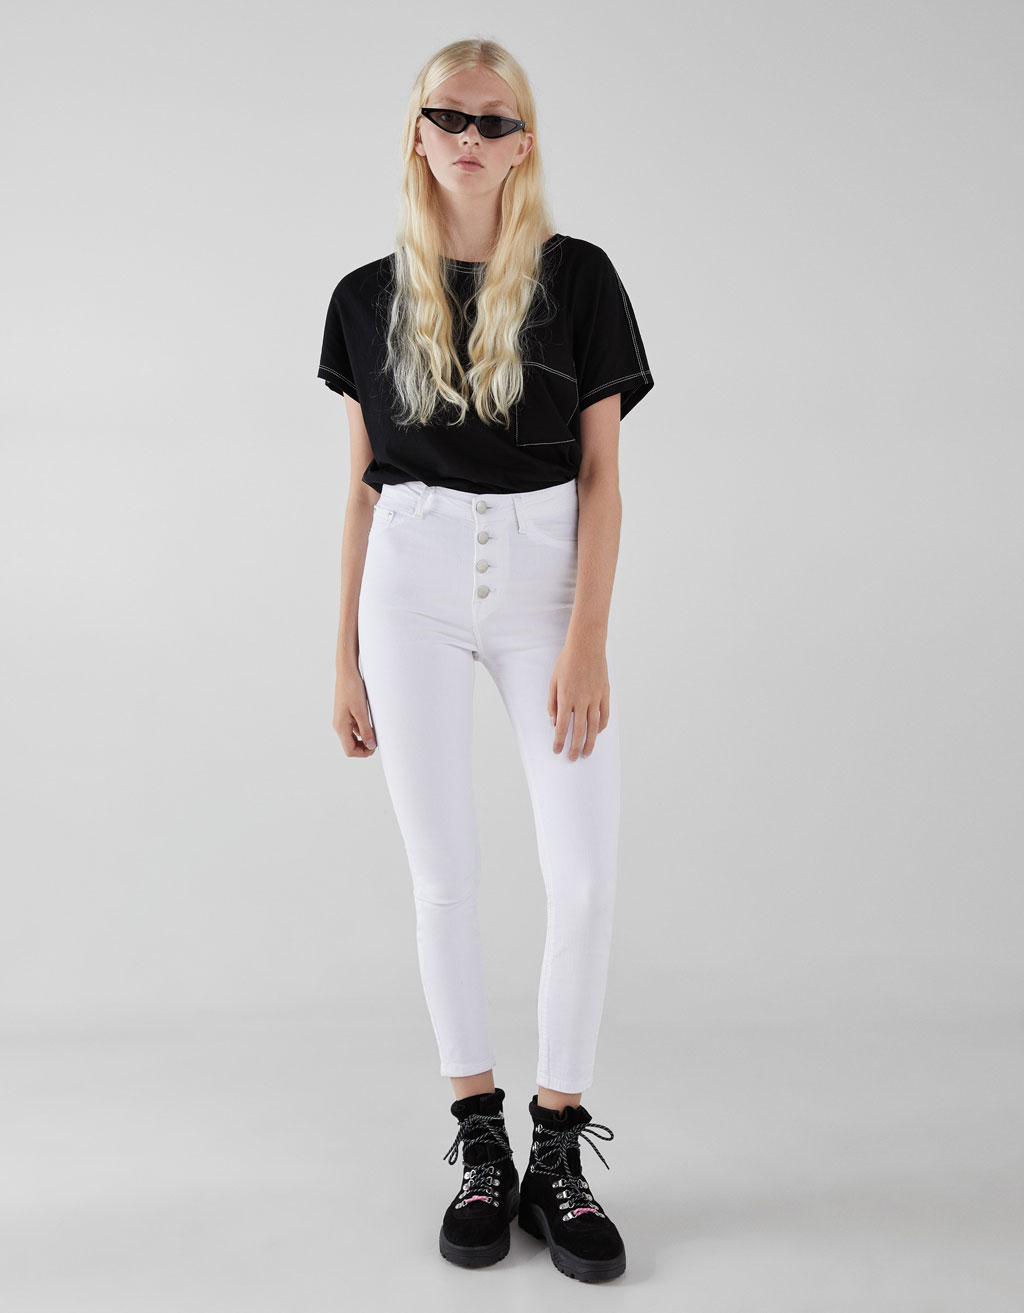 Mid waist, button-up trousers